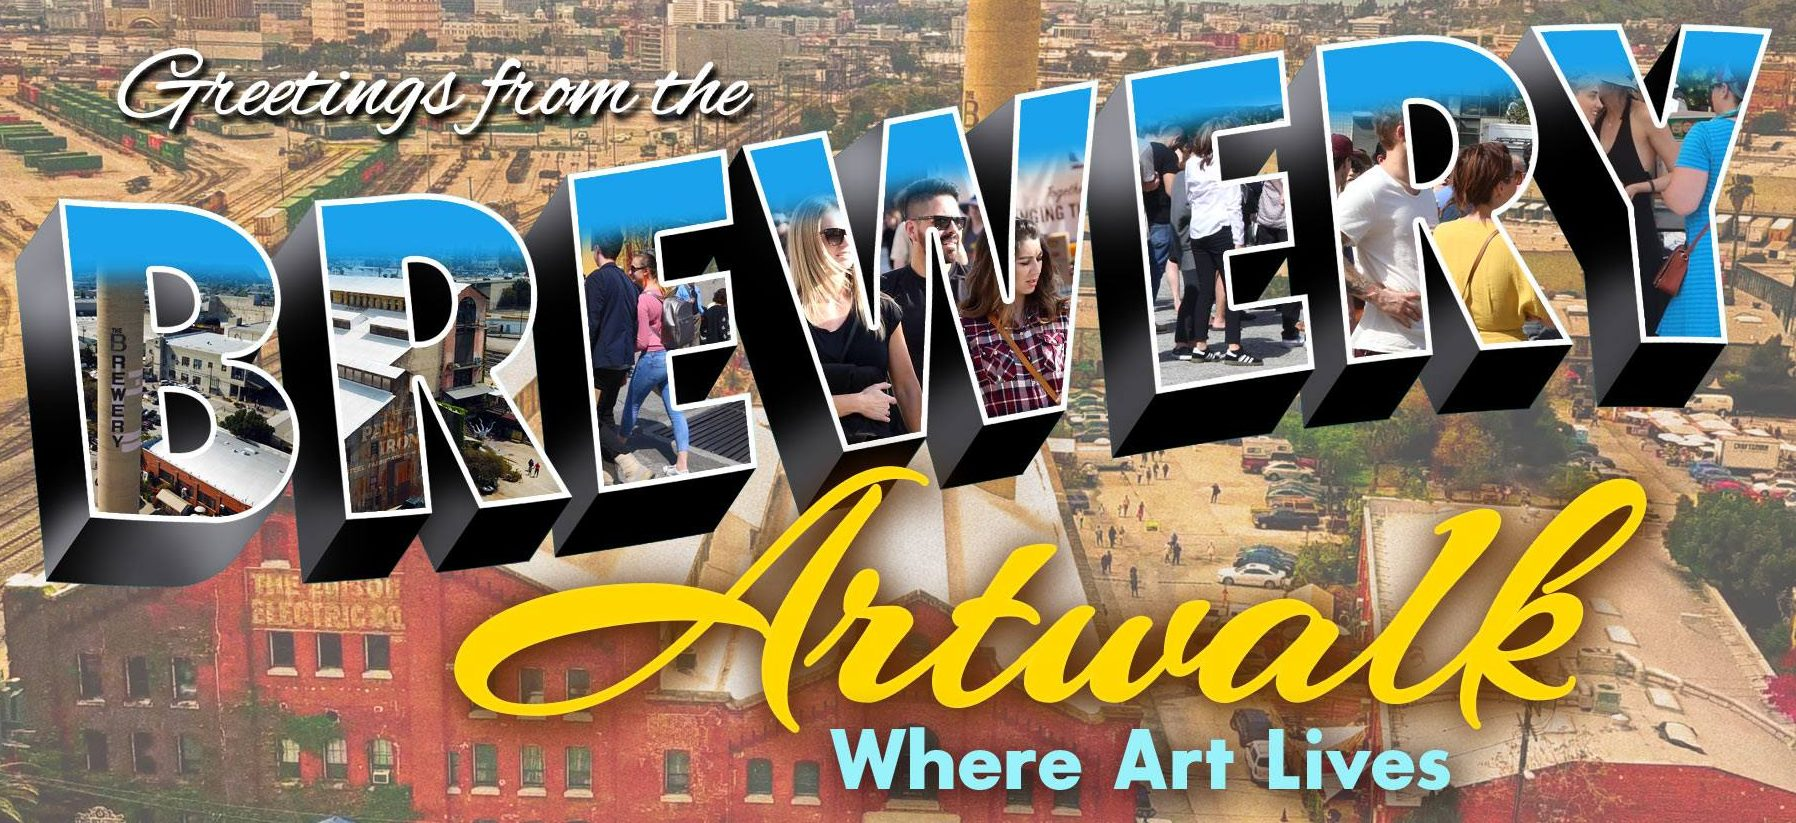 Fall 2018 Brewery Artwalk will be more than an art show. The free event is for those who want to discover one-of-a-kind treasures, explore how Los Angeles..